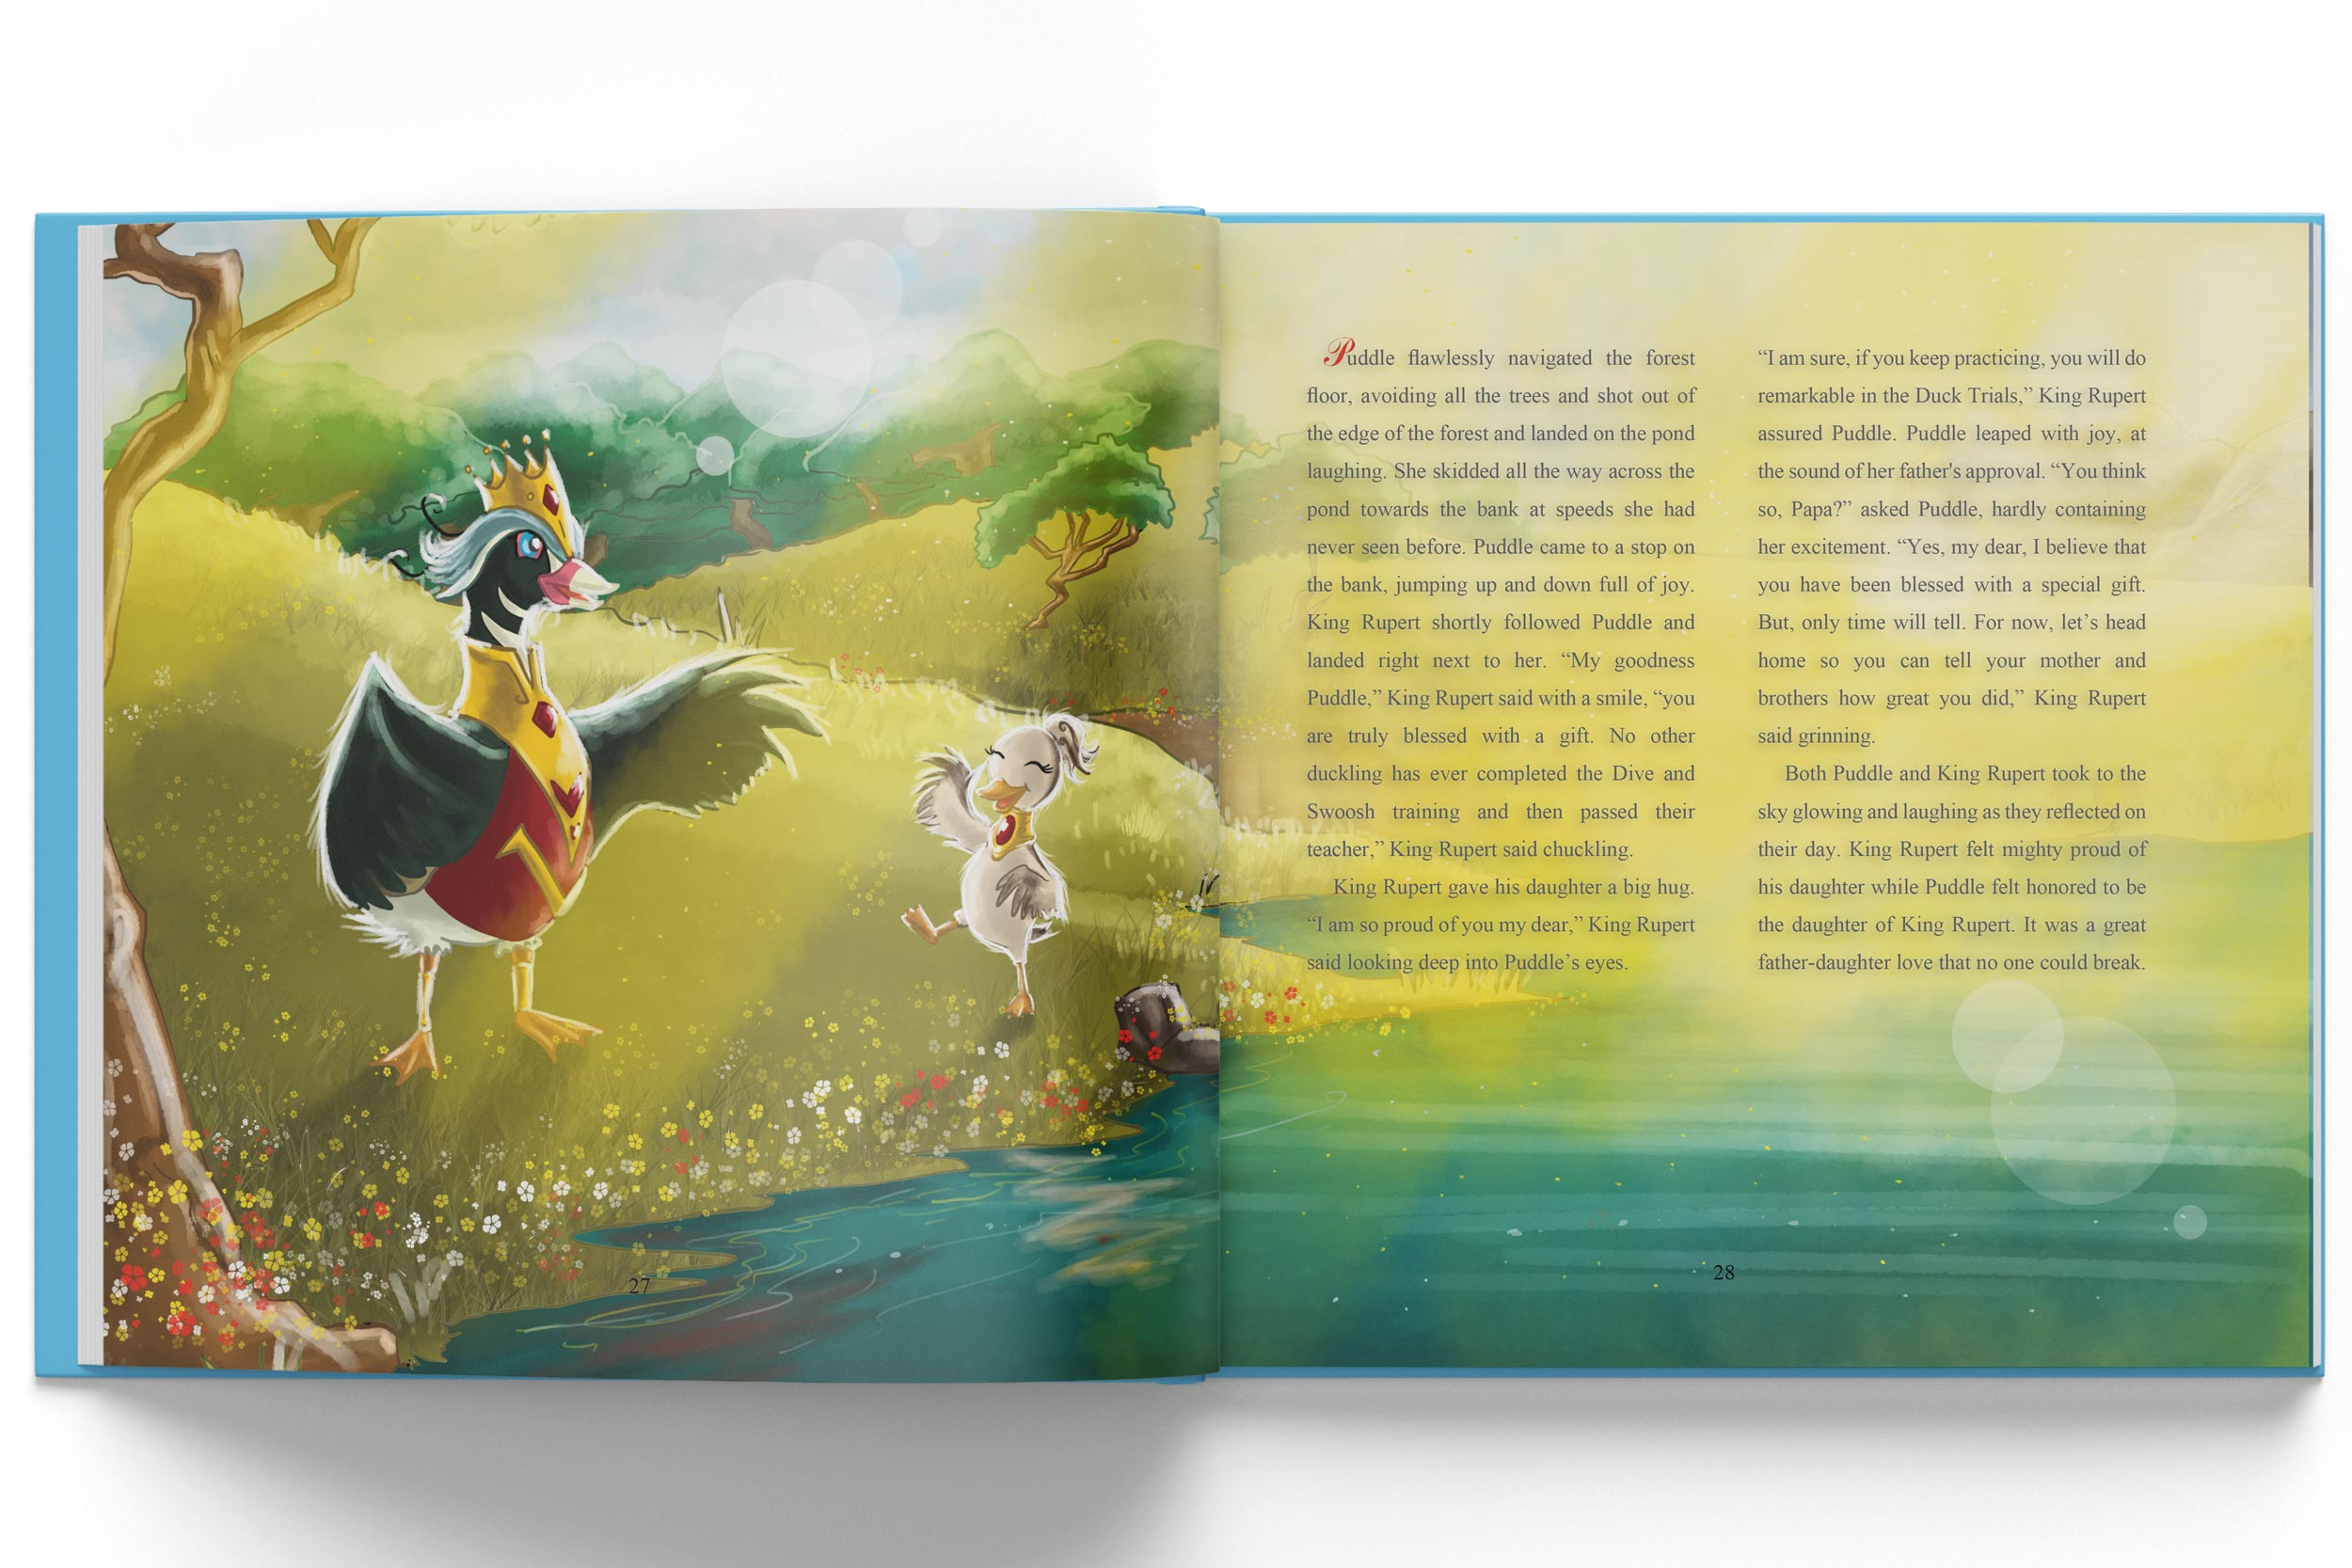 journey-of-puddle-christian-illustrated-children-books-book-1-look-inside-page-3.jpg